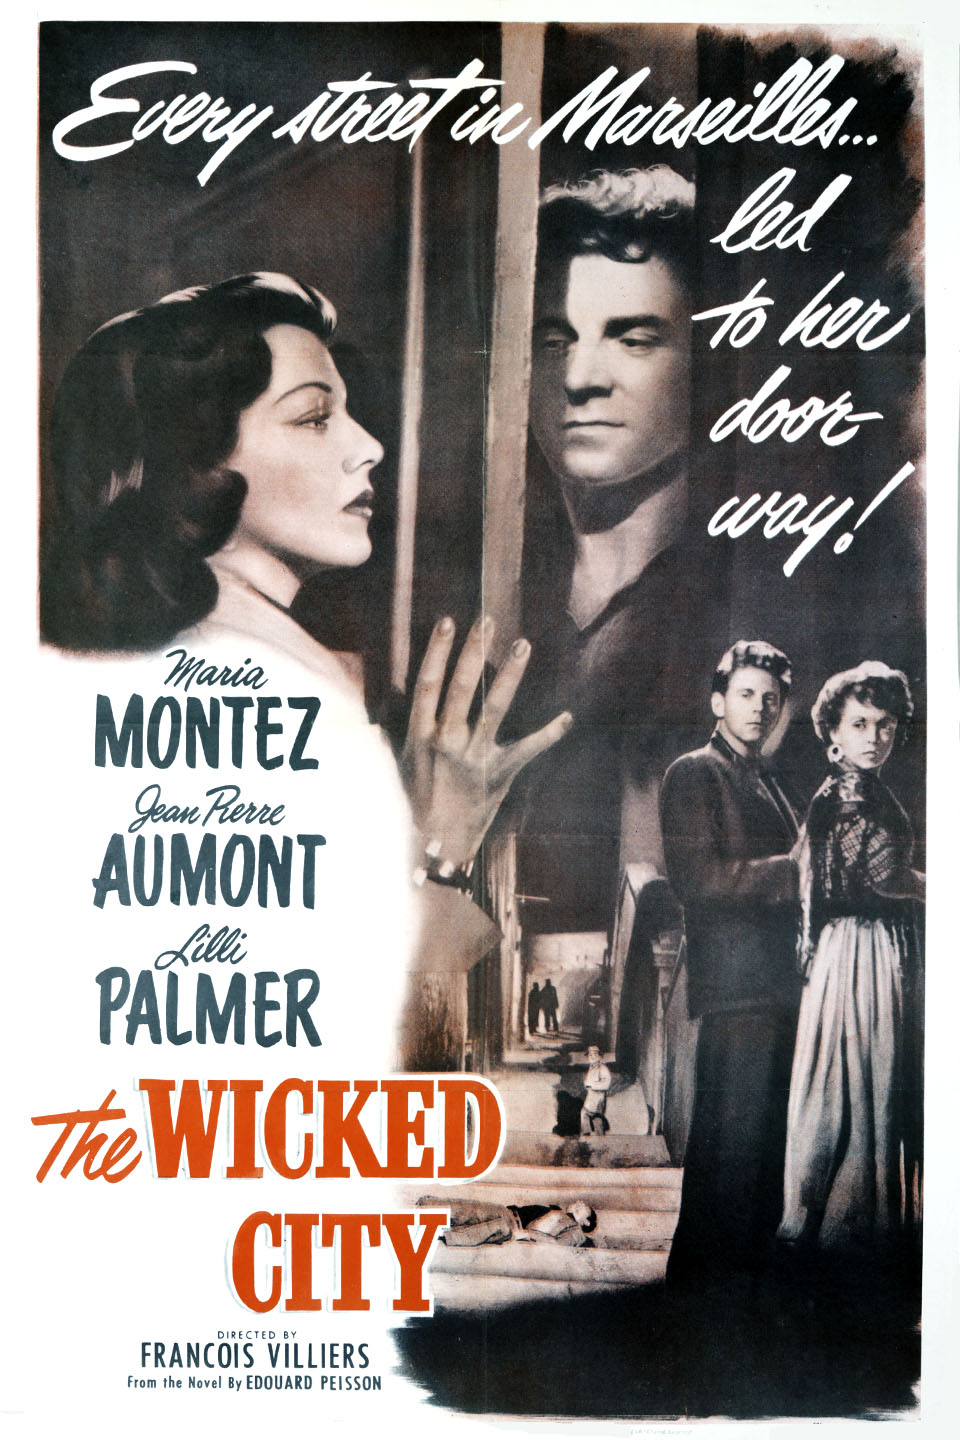 Wicked City (1949 film) wwwgstaticcomtvthumbmovieposters45413p45413